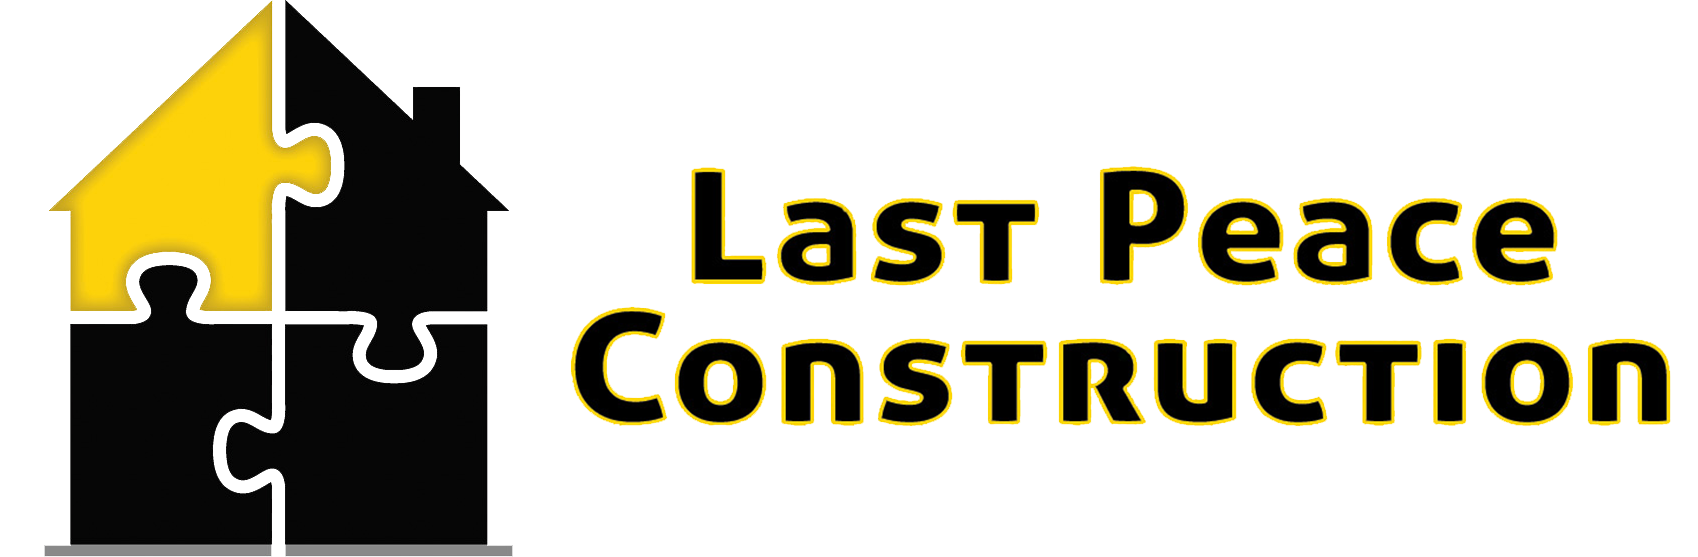 Last Peace Construction